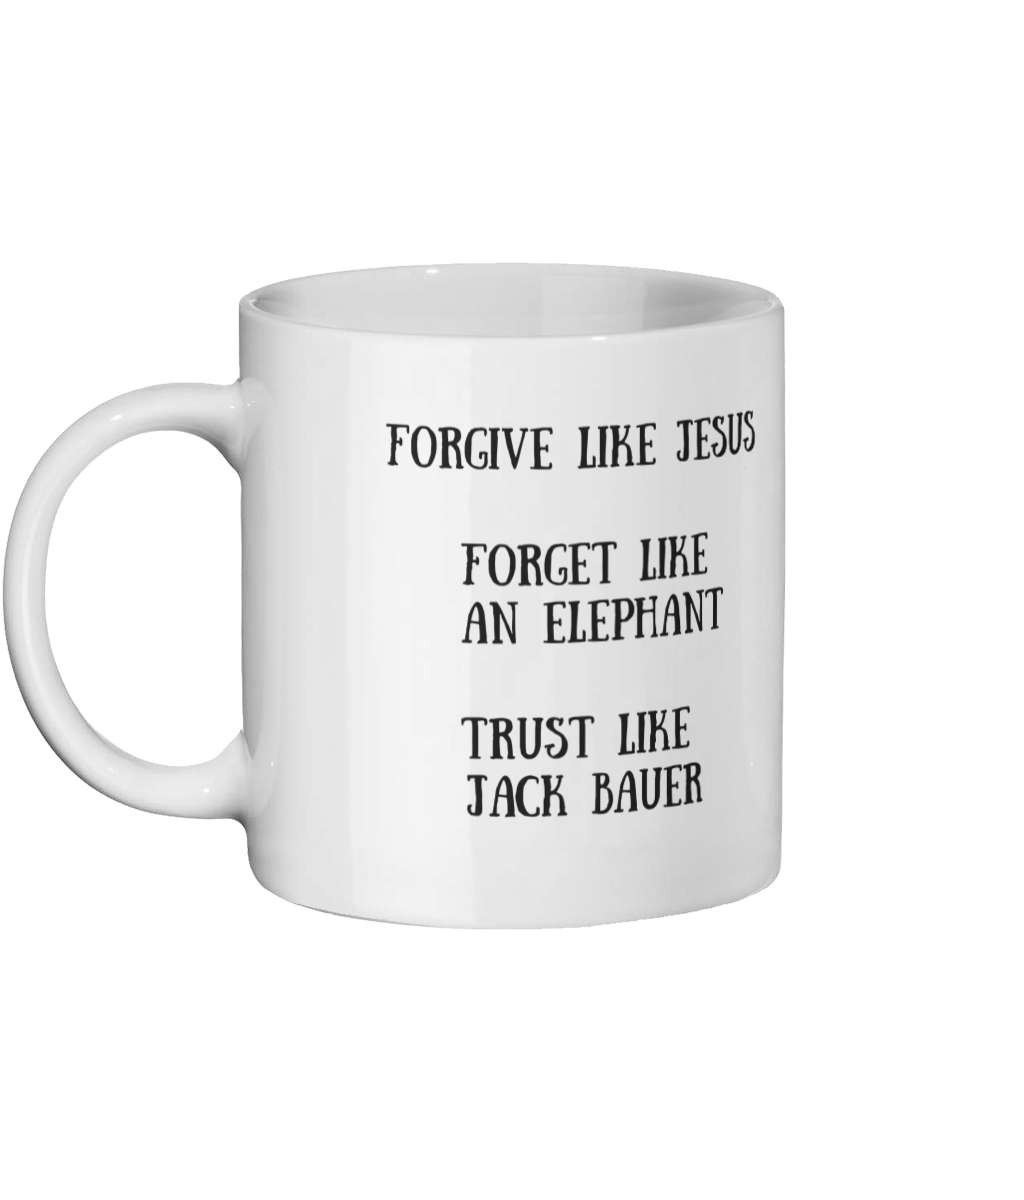 Forgive Like Jesus Mug Left Side